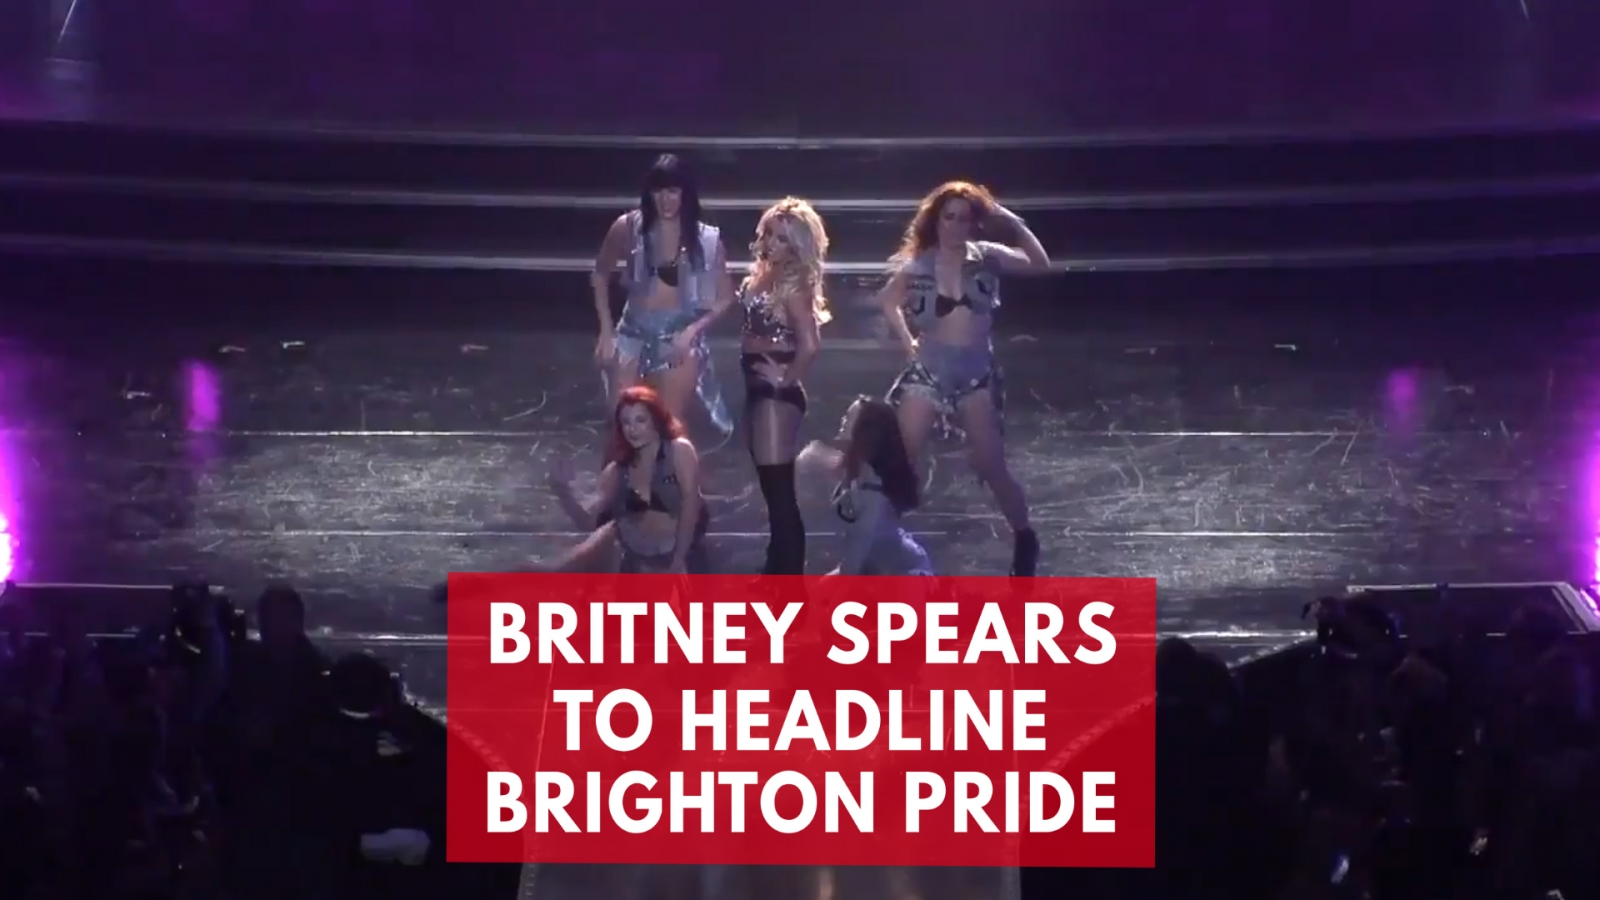 Britney Spears To Headline Brighton Pride During U.K. Tour